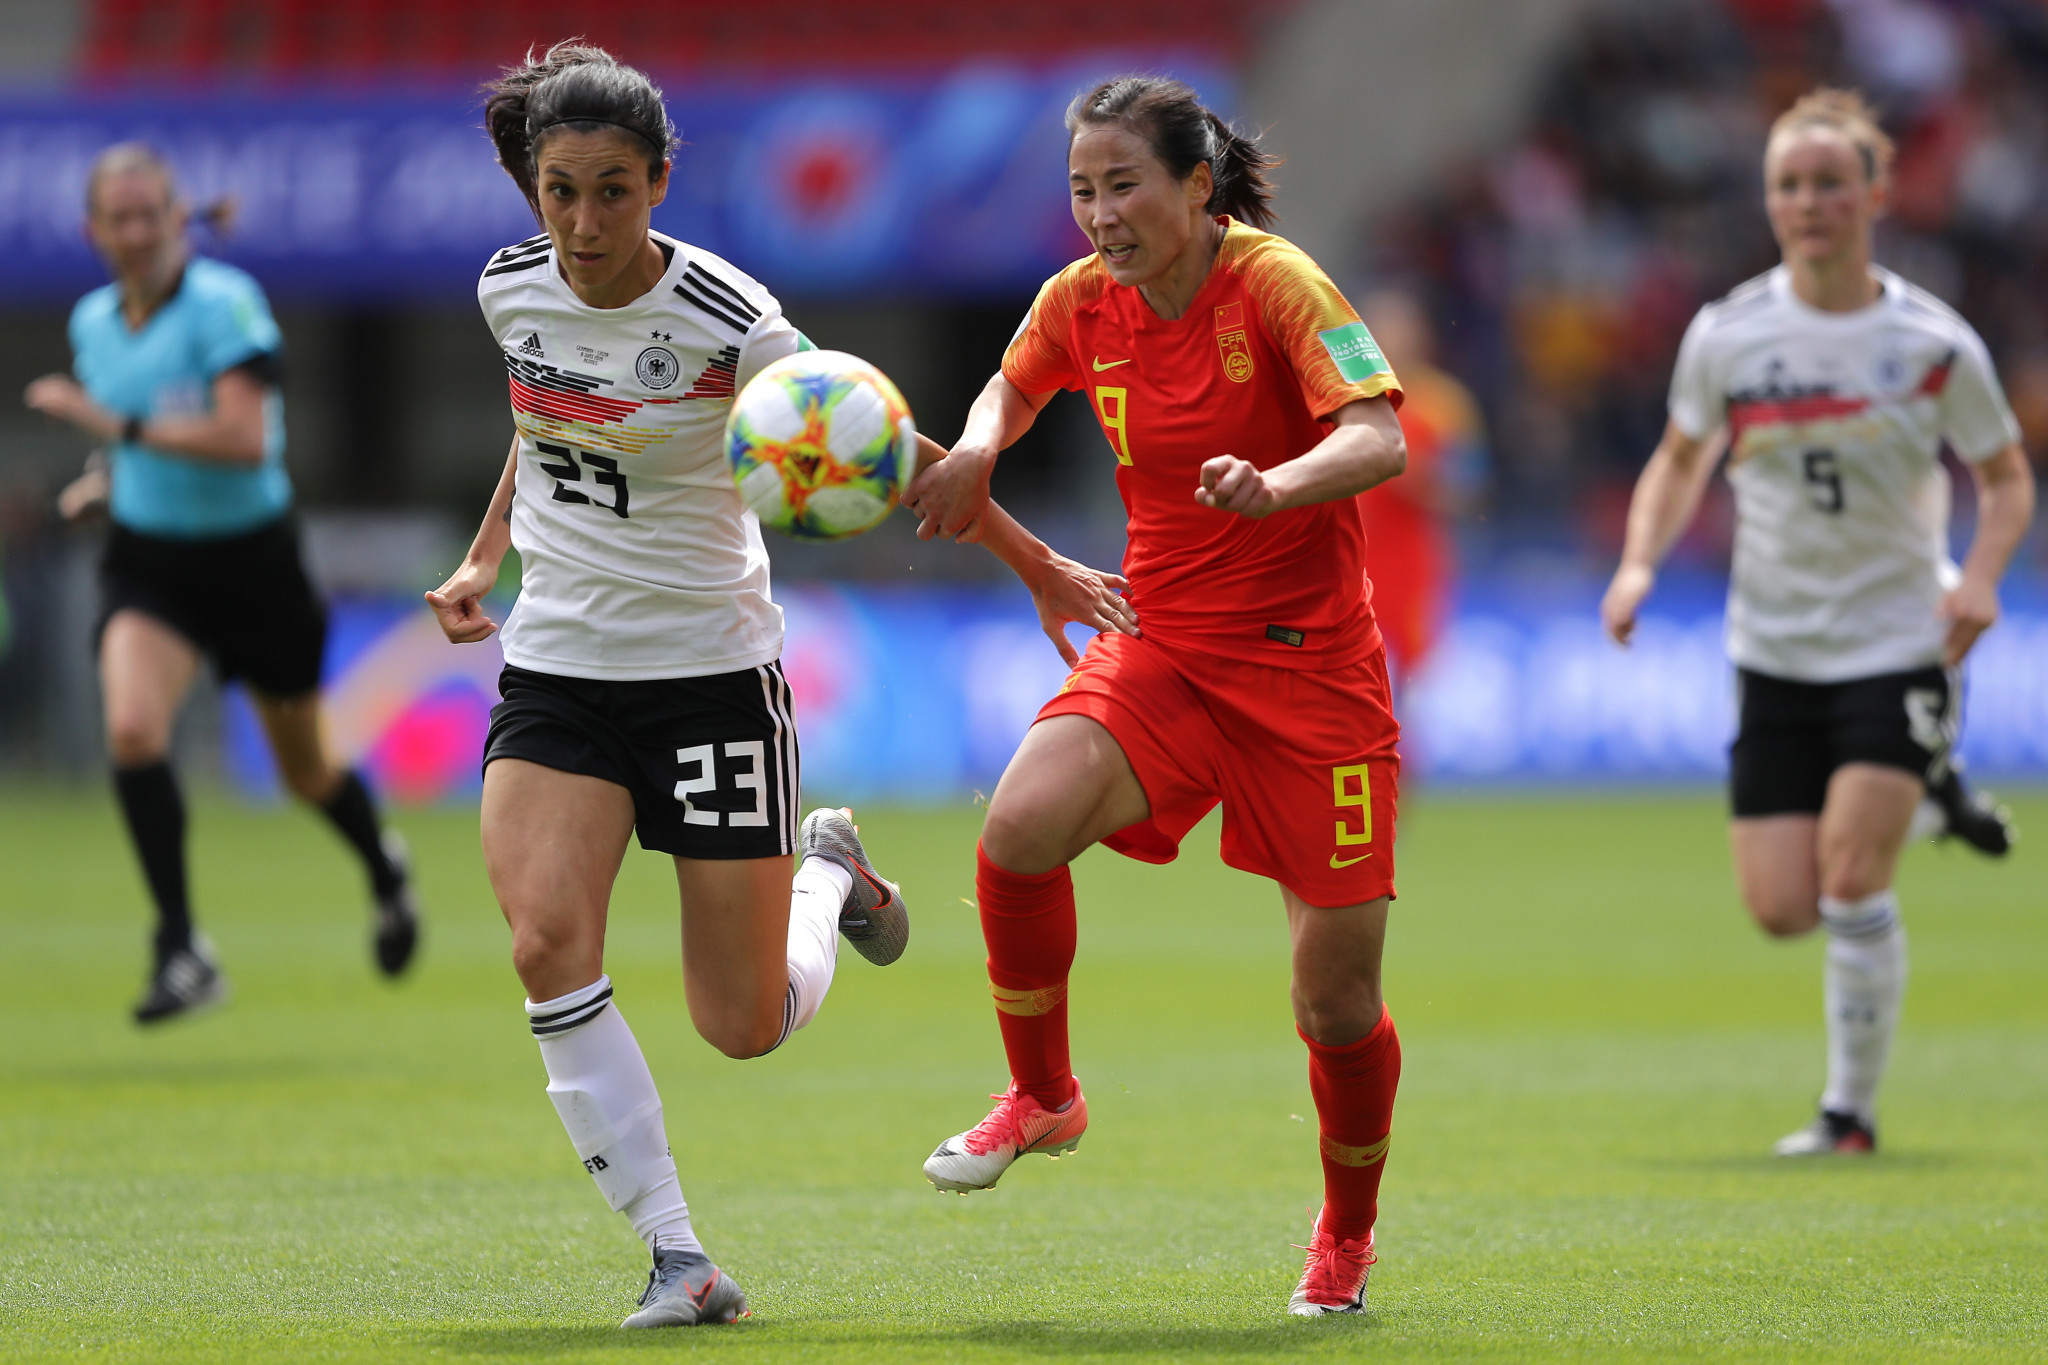 China played Germany in the other Group B fixture, with Yang Li wasting a couple of chances for her team ©Getty Images